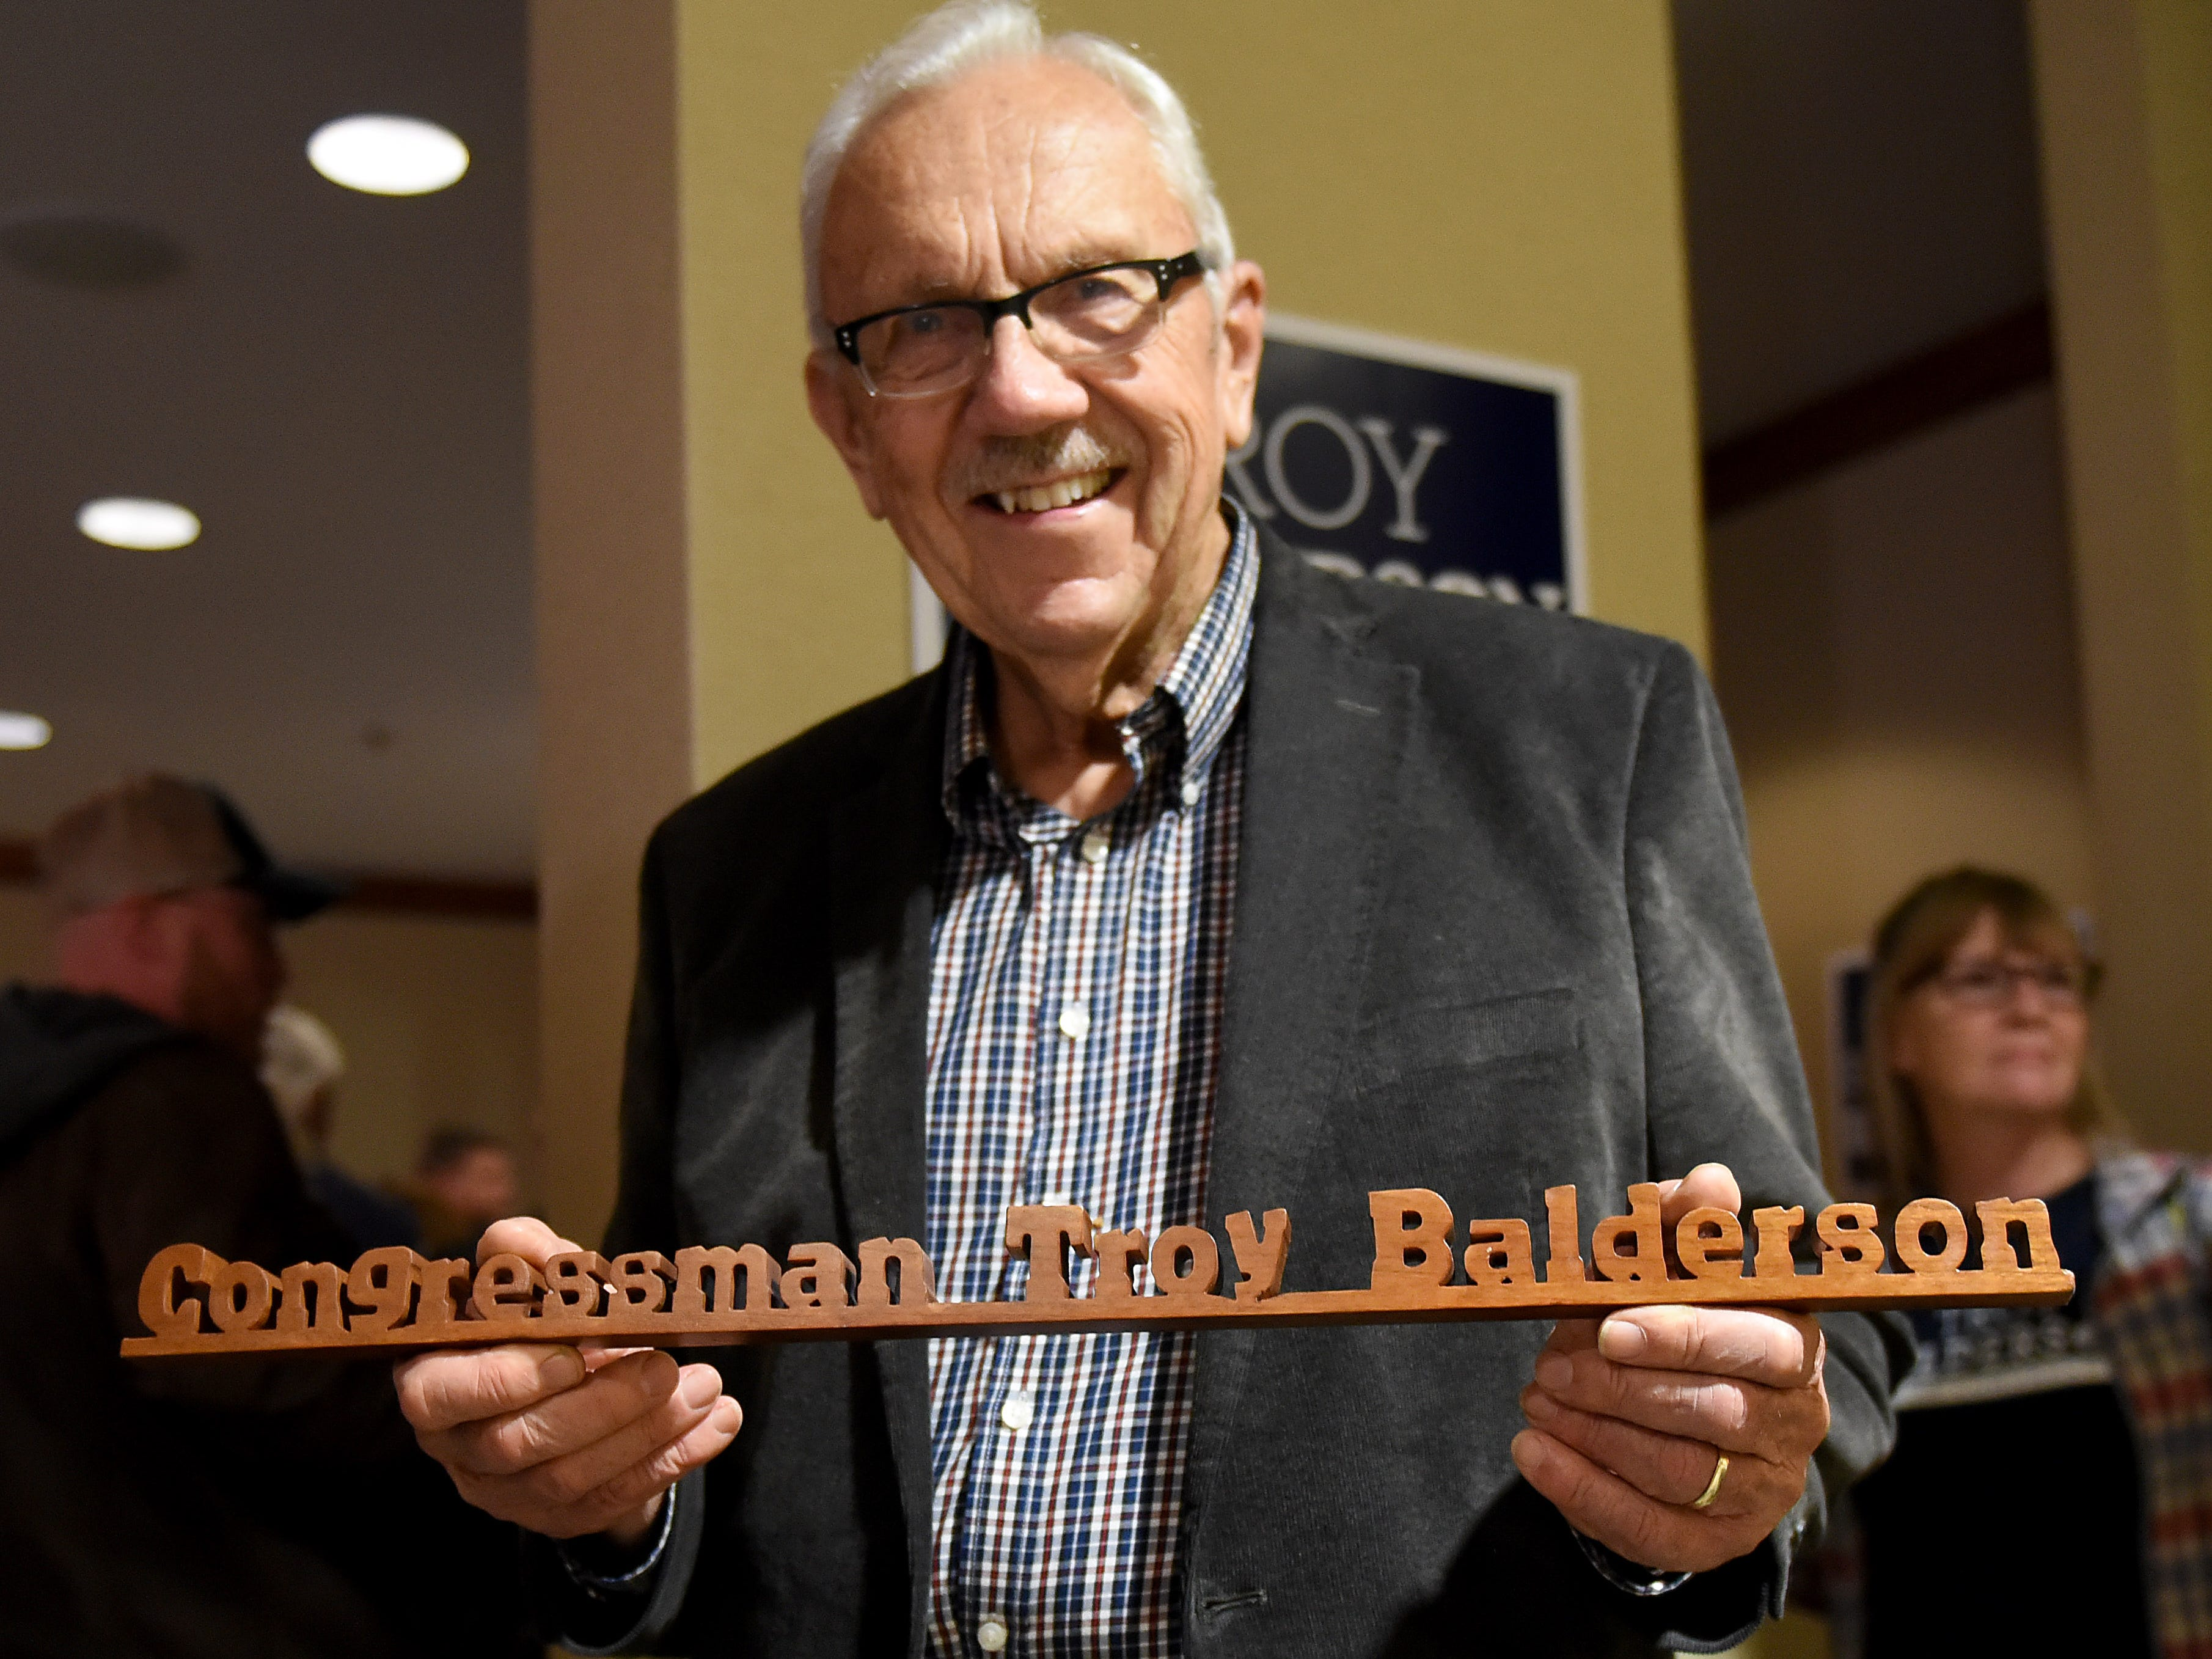 Dave Grube, of St. Albans, with a wooden sign he made for Congressman Troy Balderson during a Balderson election night event at the DoubleTree in Newark. Grube had also made a similar sign for former Ohio 12 Congressman Pat Tiberi.